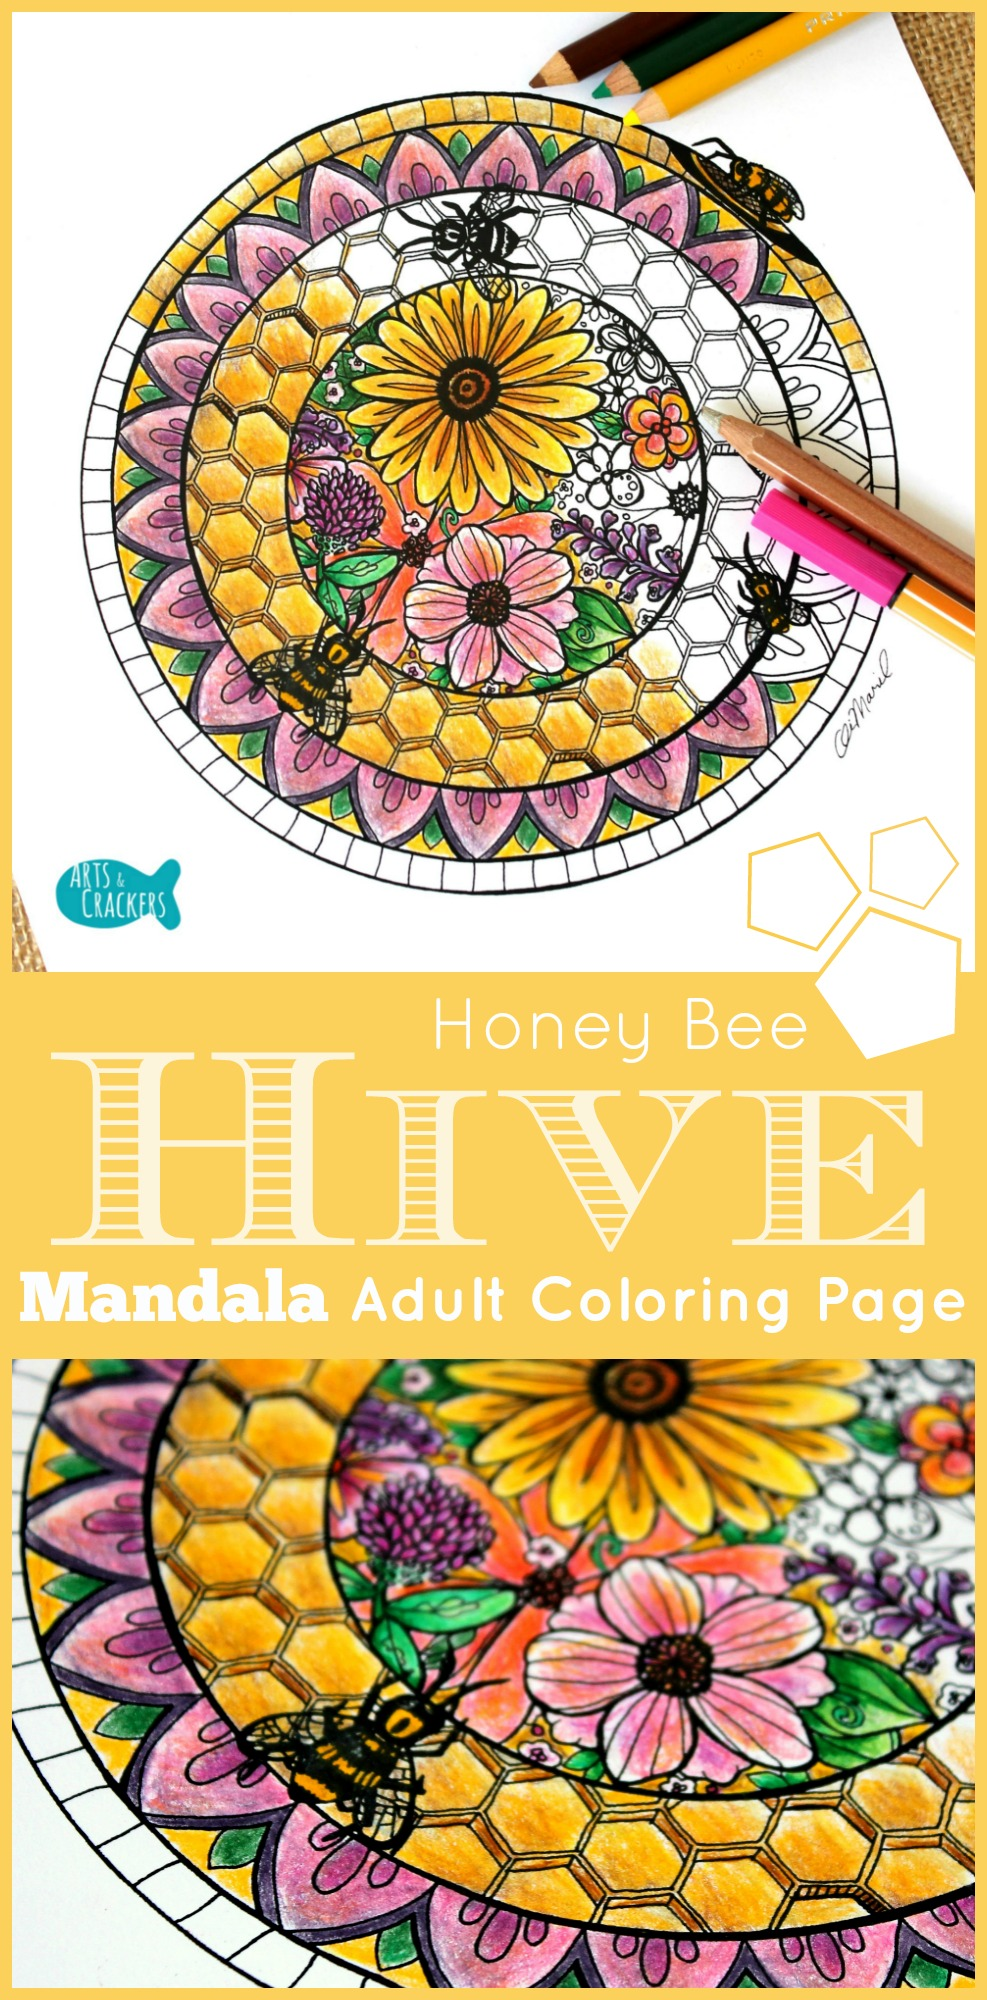 Enjoy This Gorgeous Honey Bee Hive Mandala Adult Coloring Page Over A Warm Cuppa Great For